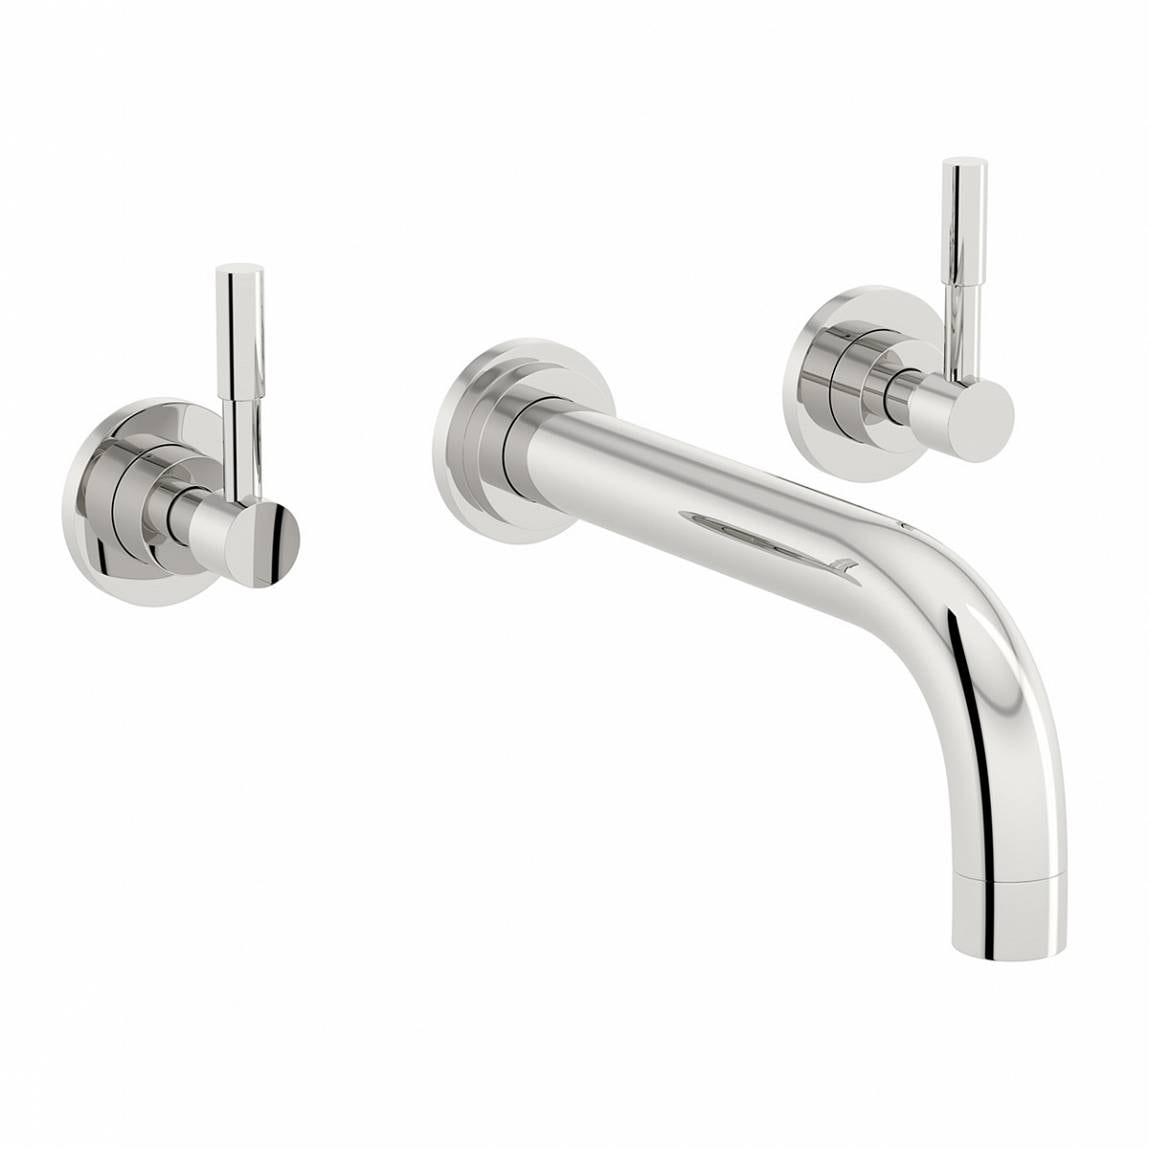 Mode Harrison wall mounted basin mixer tap